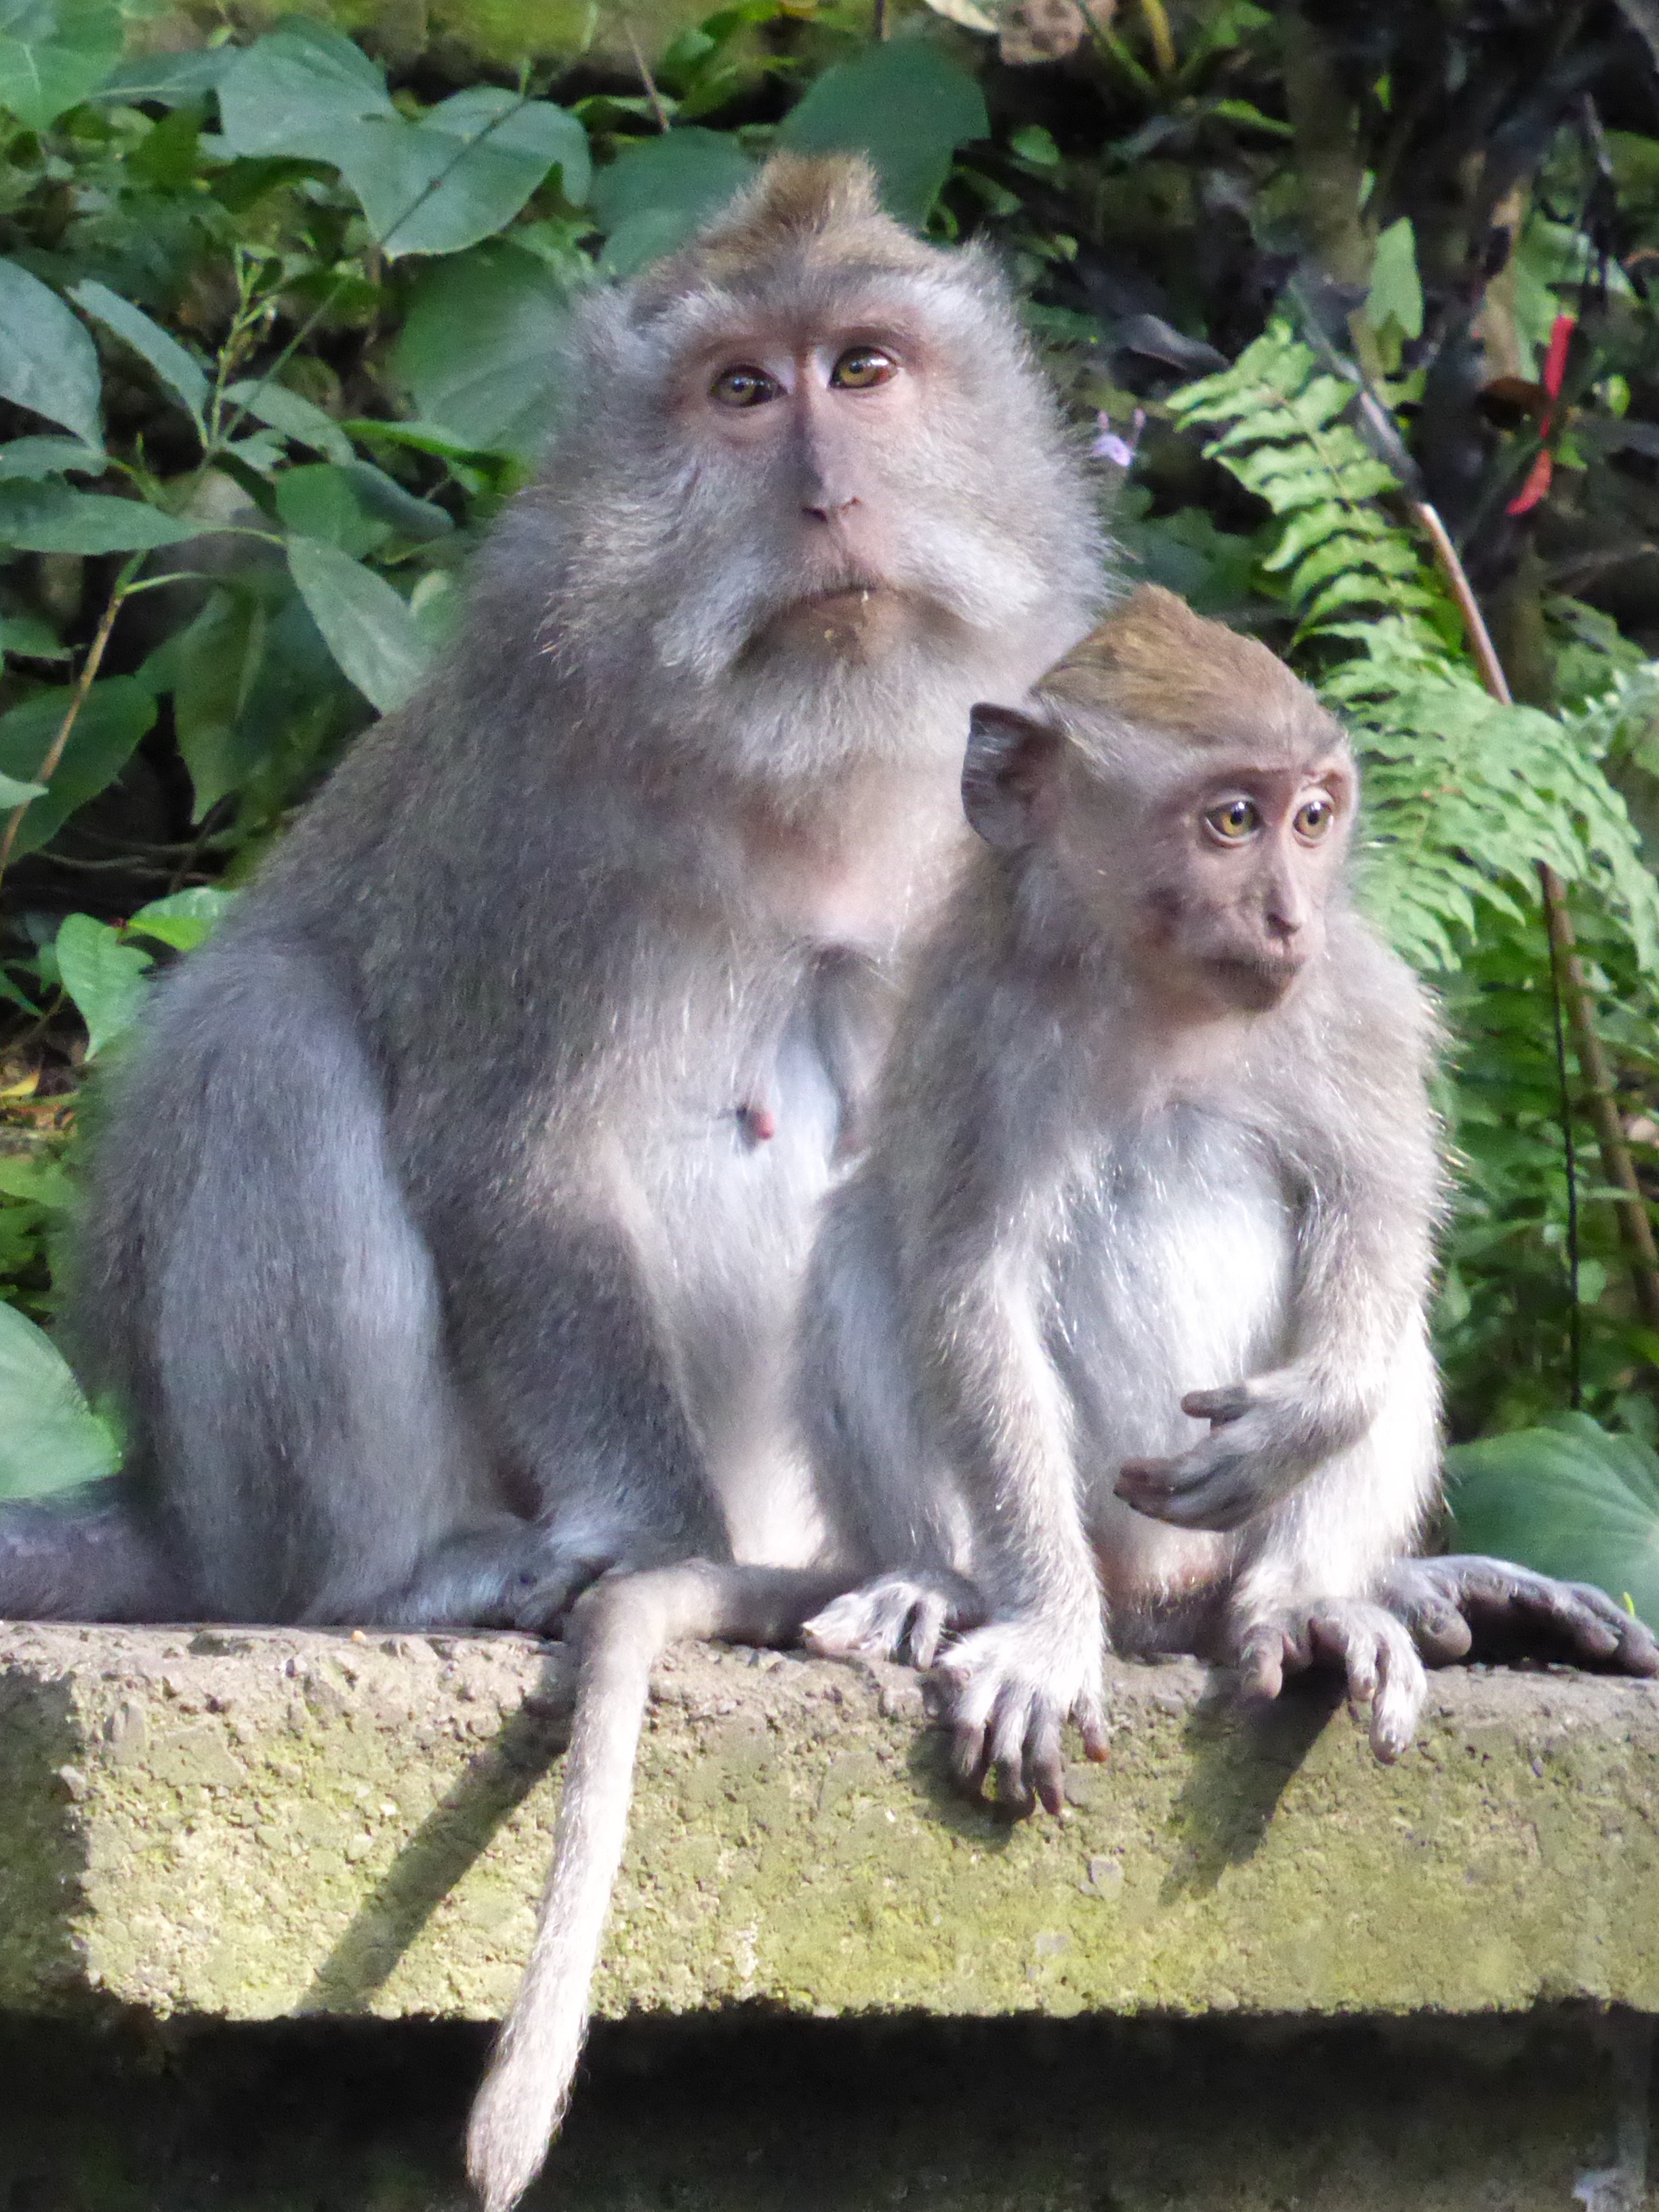 parent and child monkey